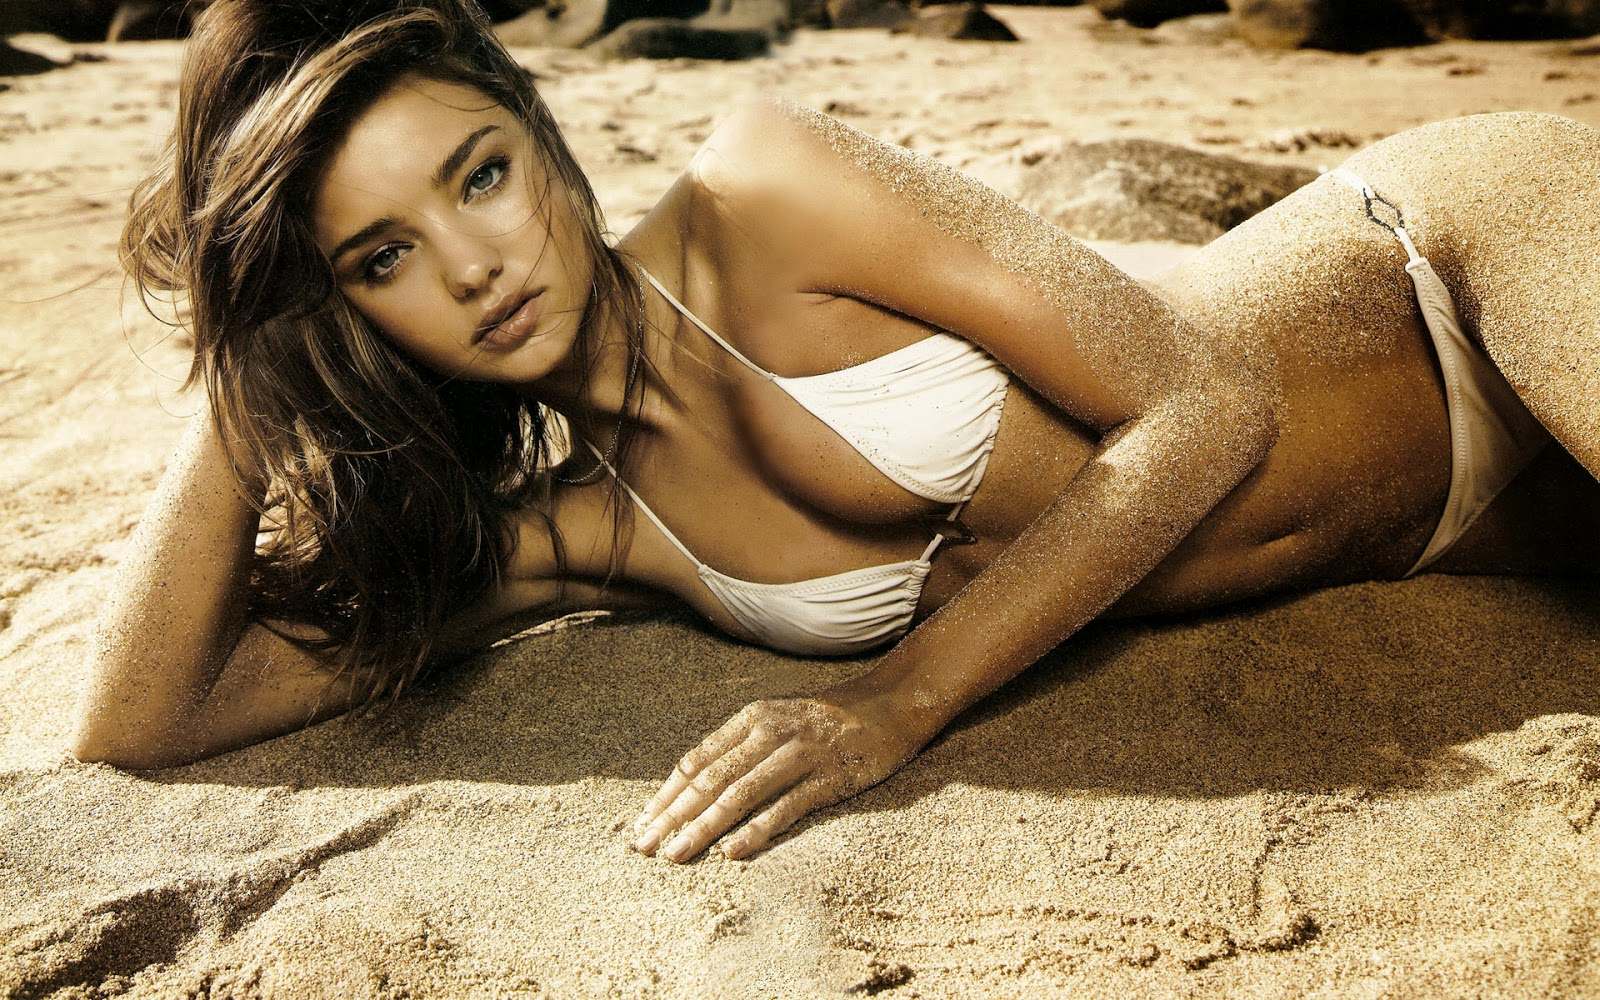 Top 10 Hottest Models In 2013